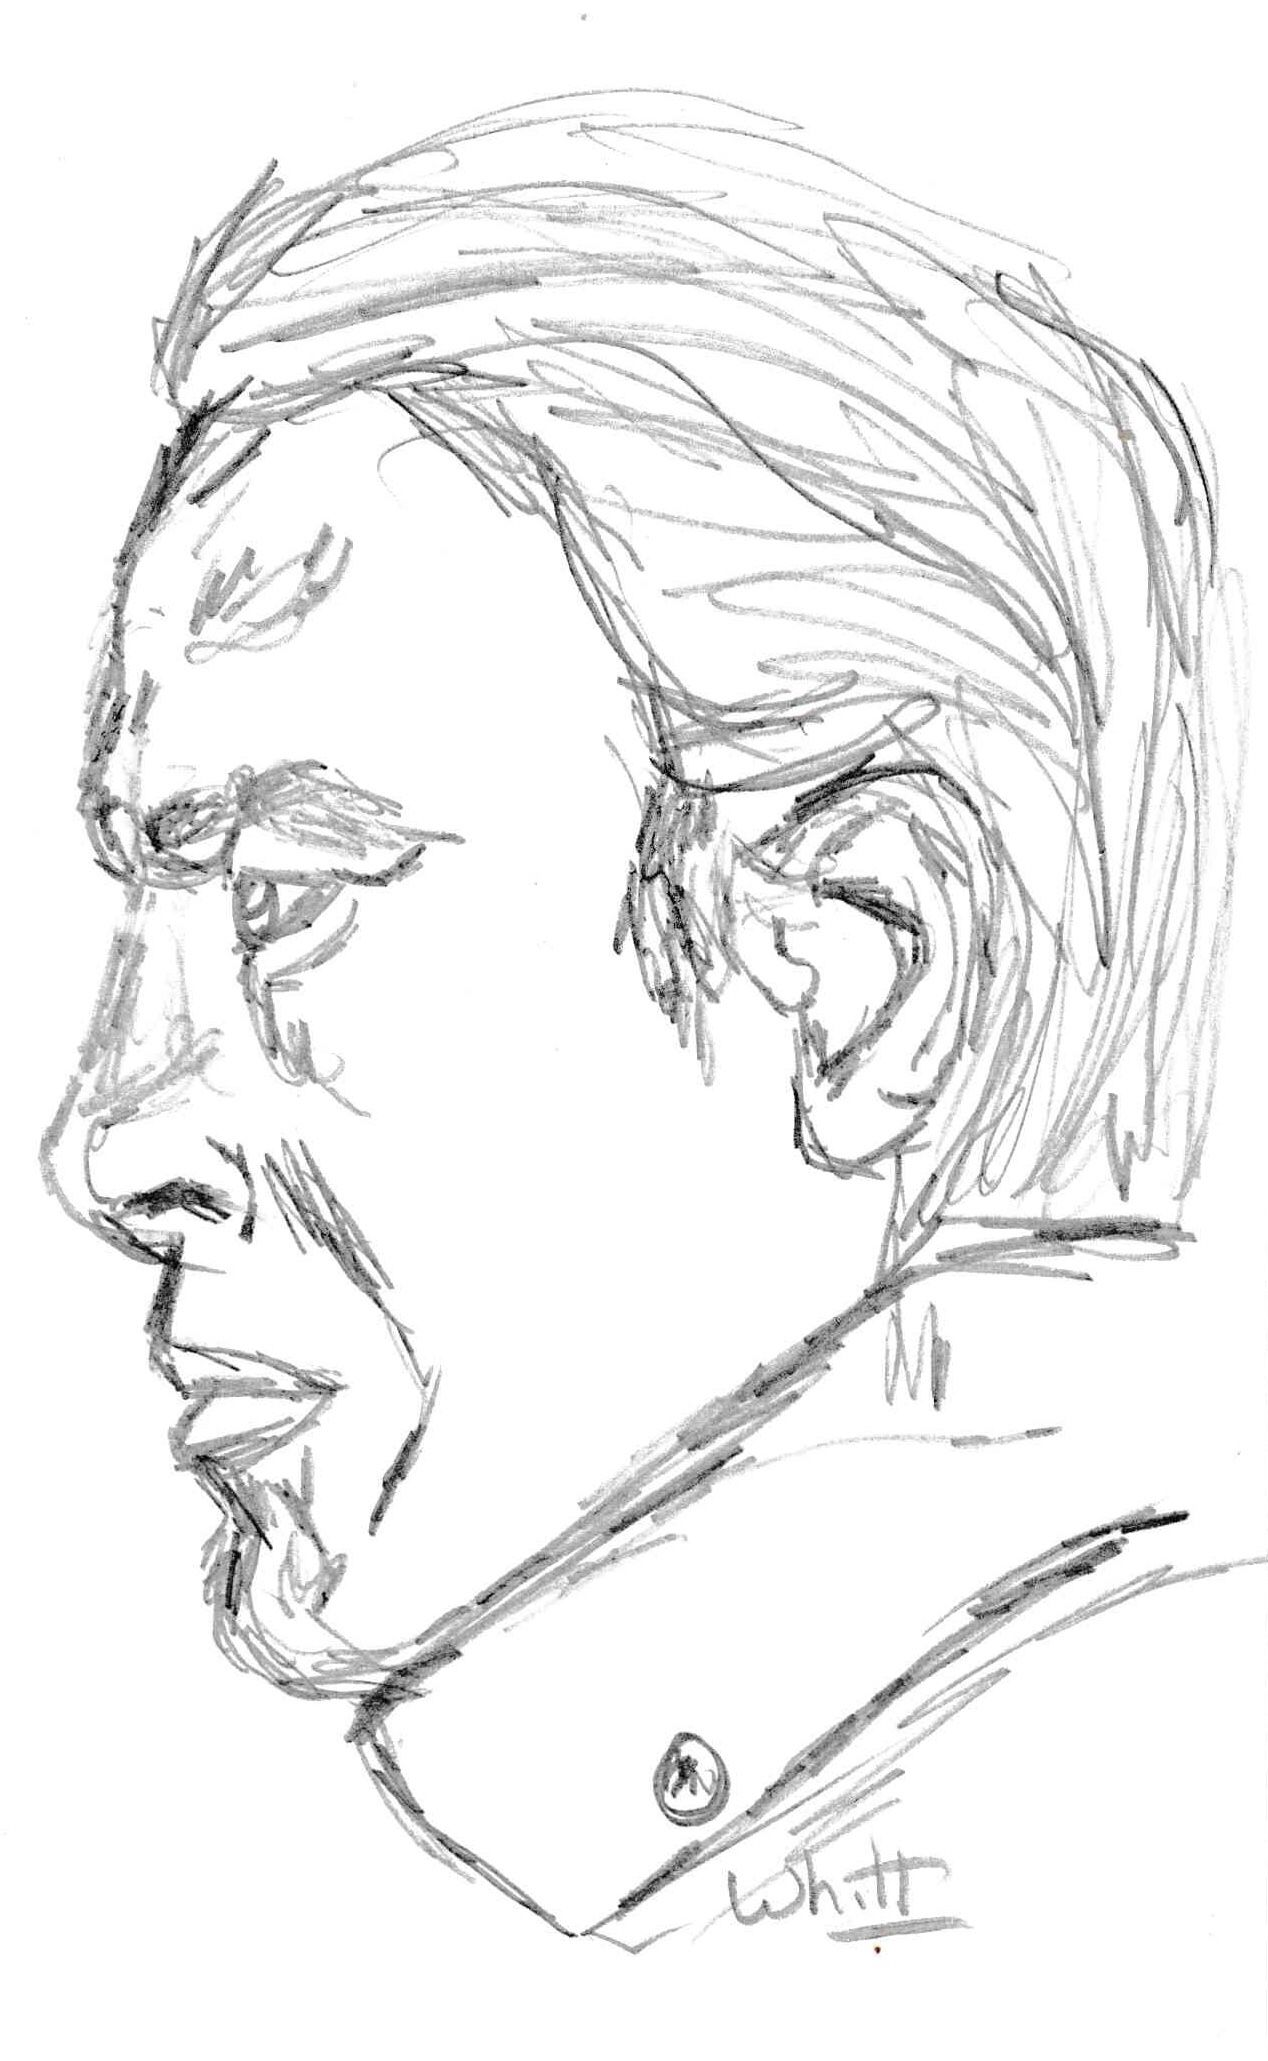 360 Of 1001 Old Man Side View In 2020 Man Sketch Guy Drawing Cartoon Character Design